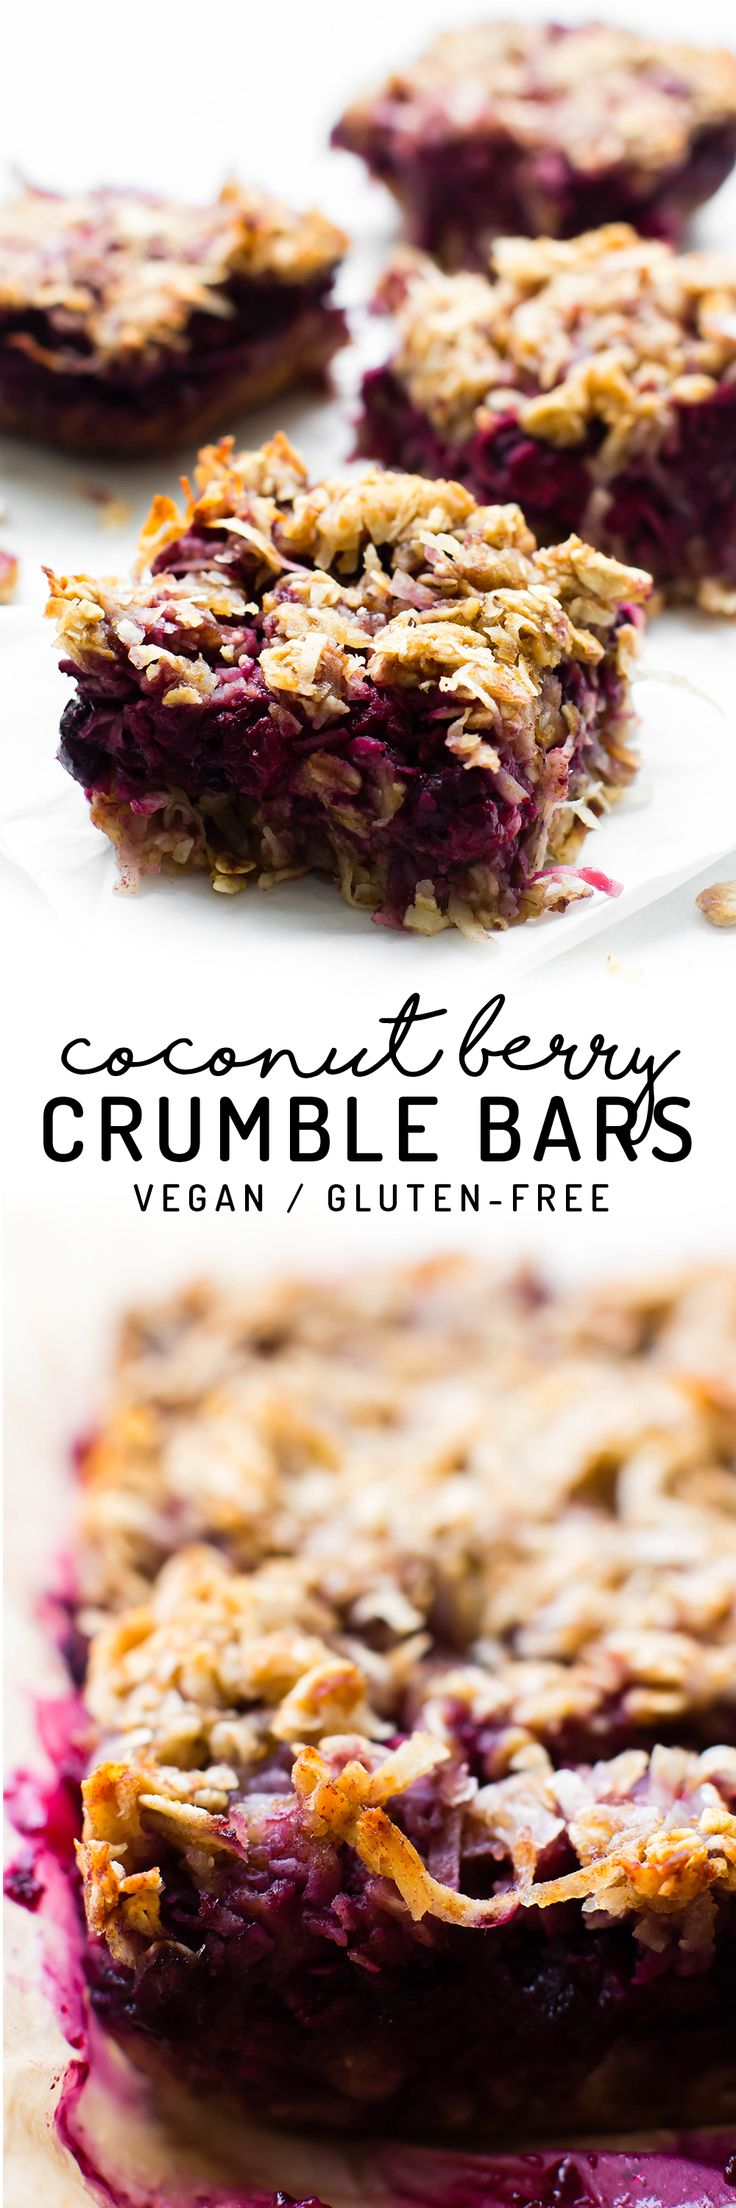 Mixed berries blanketed with oil-free oat streusel makes these Coconut Berry Crumble Bars an easy healthy snack or dessert with ice cream on top! Vegan, gluten-free, refined sugar-free. via @Natalie | Feasting on Fruit